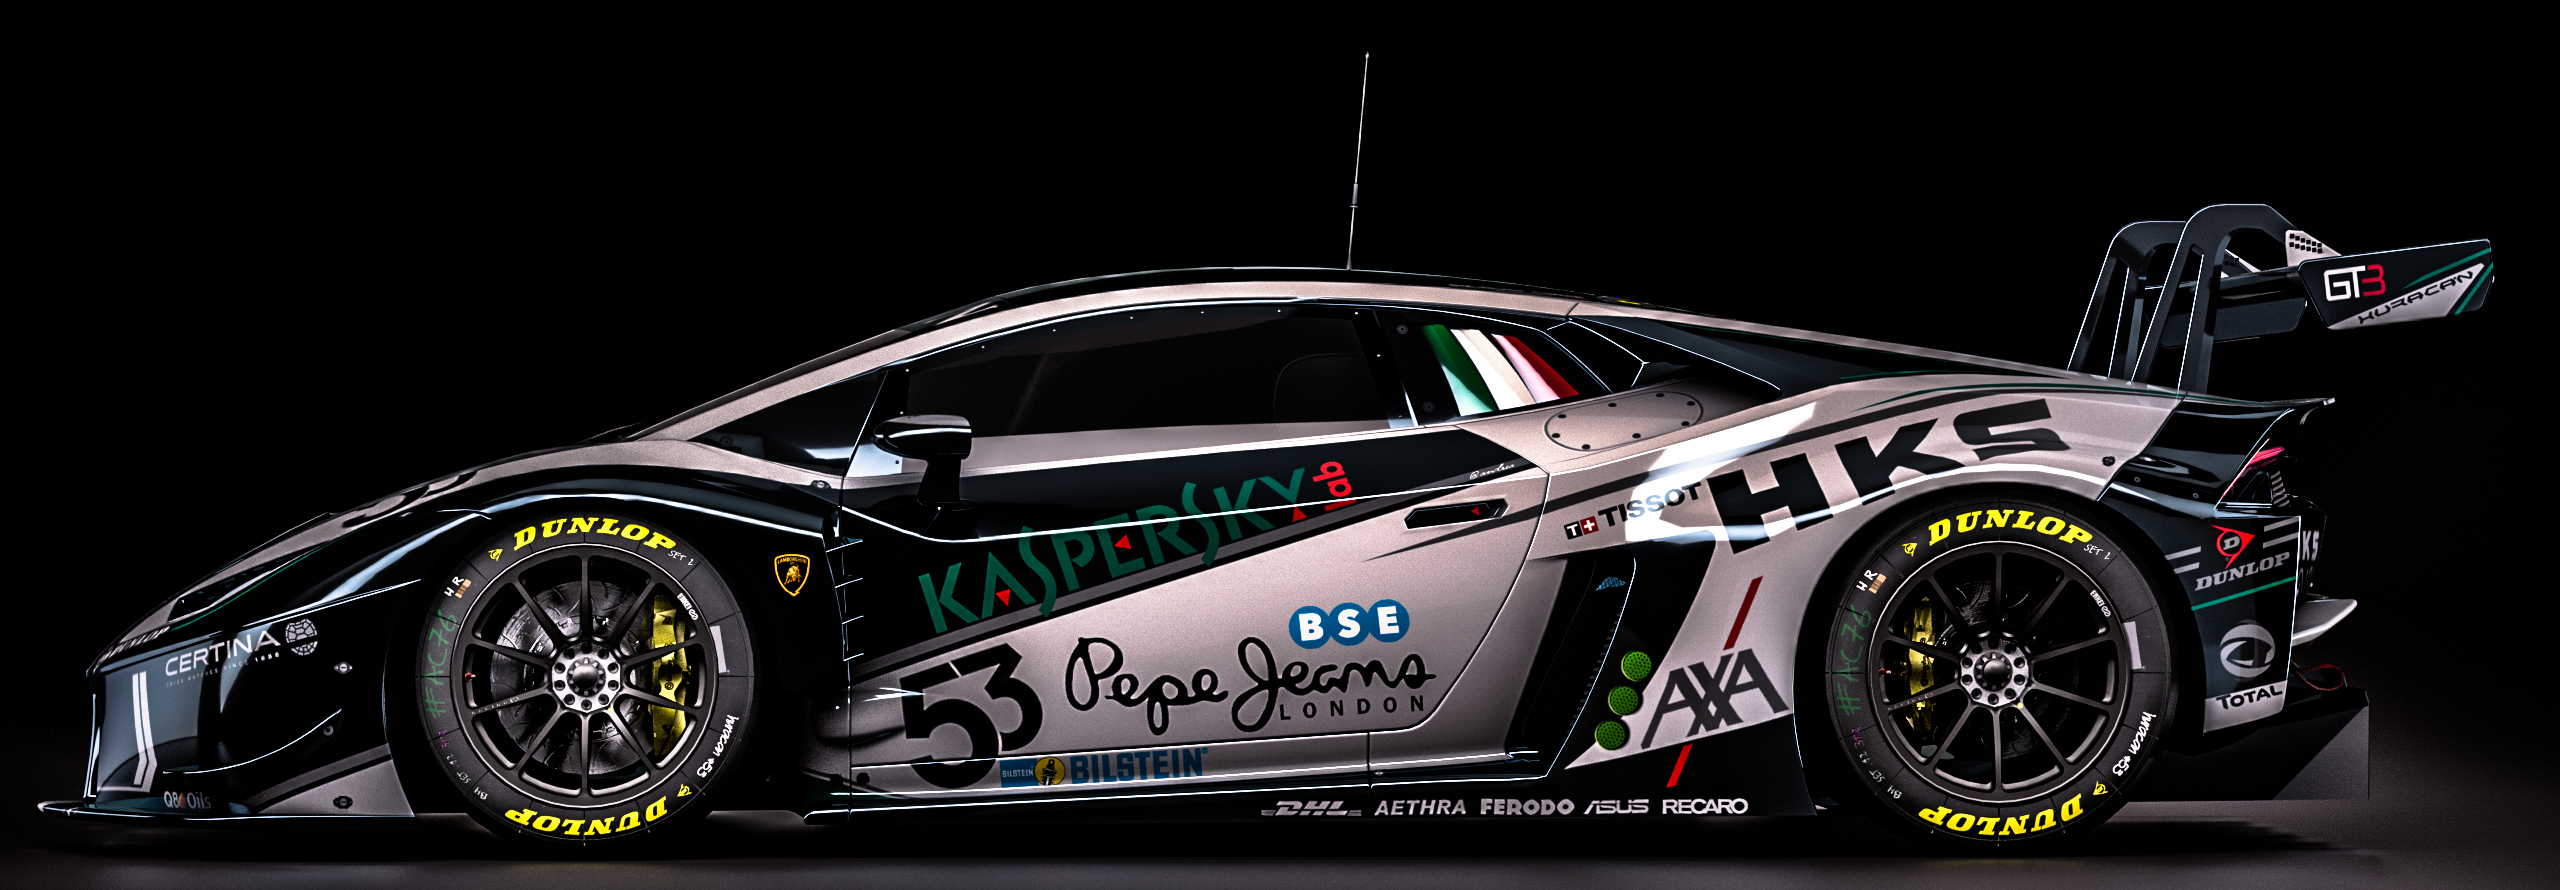 lamborghini huracan gt3 fantasy kaspersky livery by nancorocks on deviantart. Black Bedroom Furniture Sets. Home Design Ideas